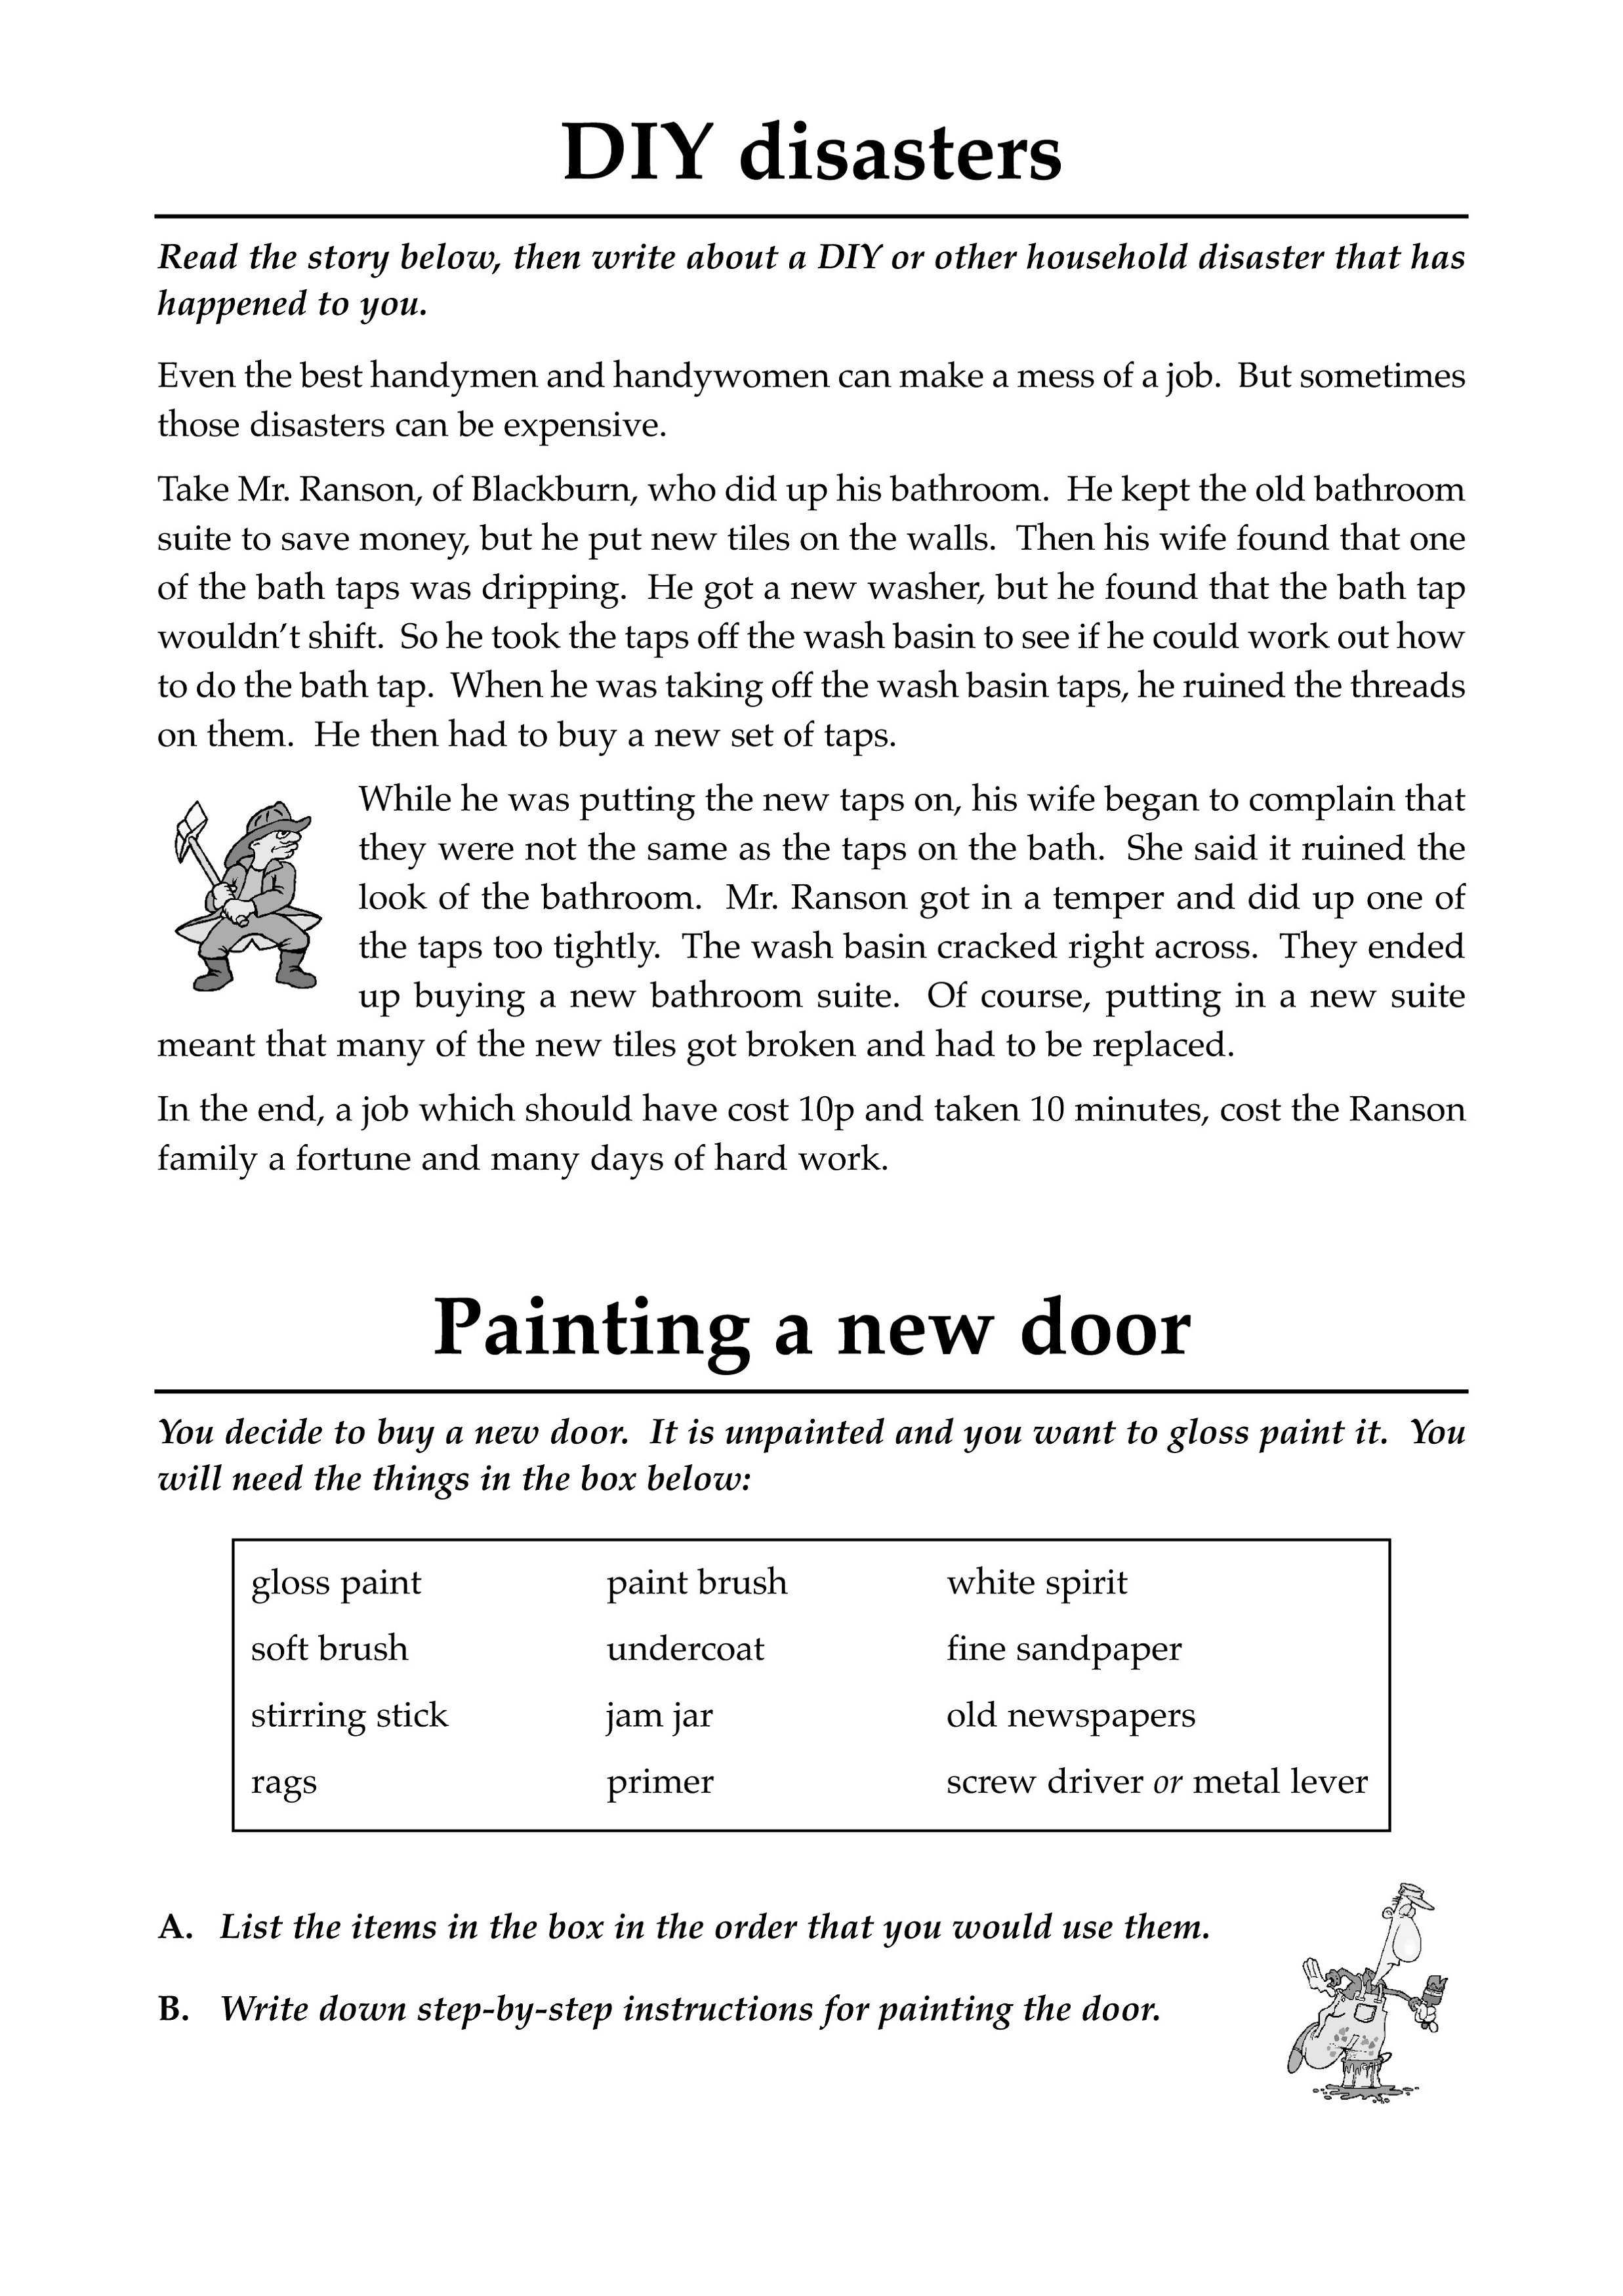 Literacy Worksheets Disaster Learning Printable